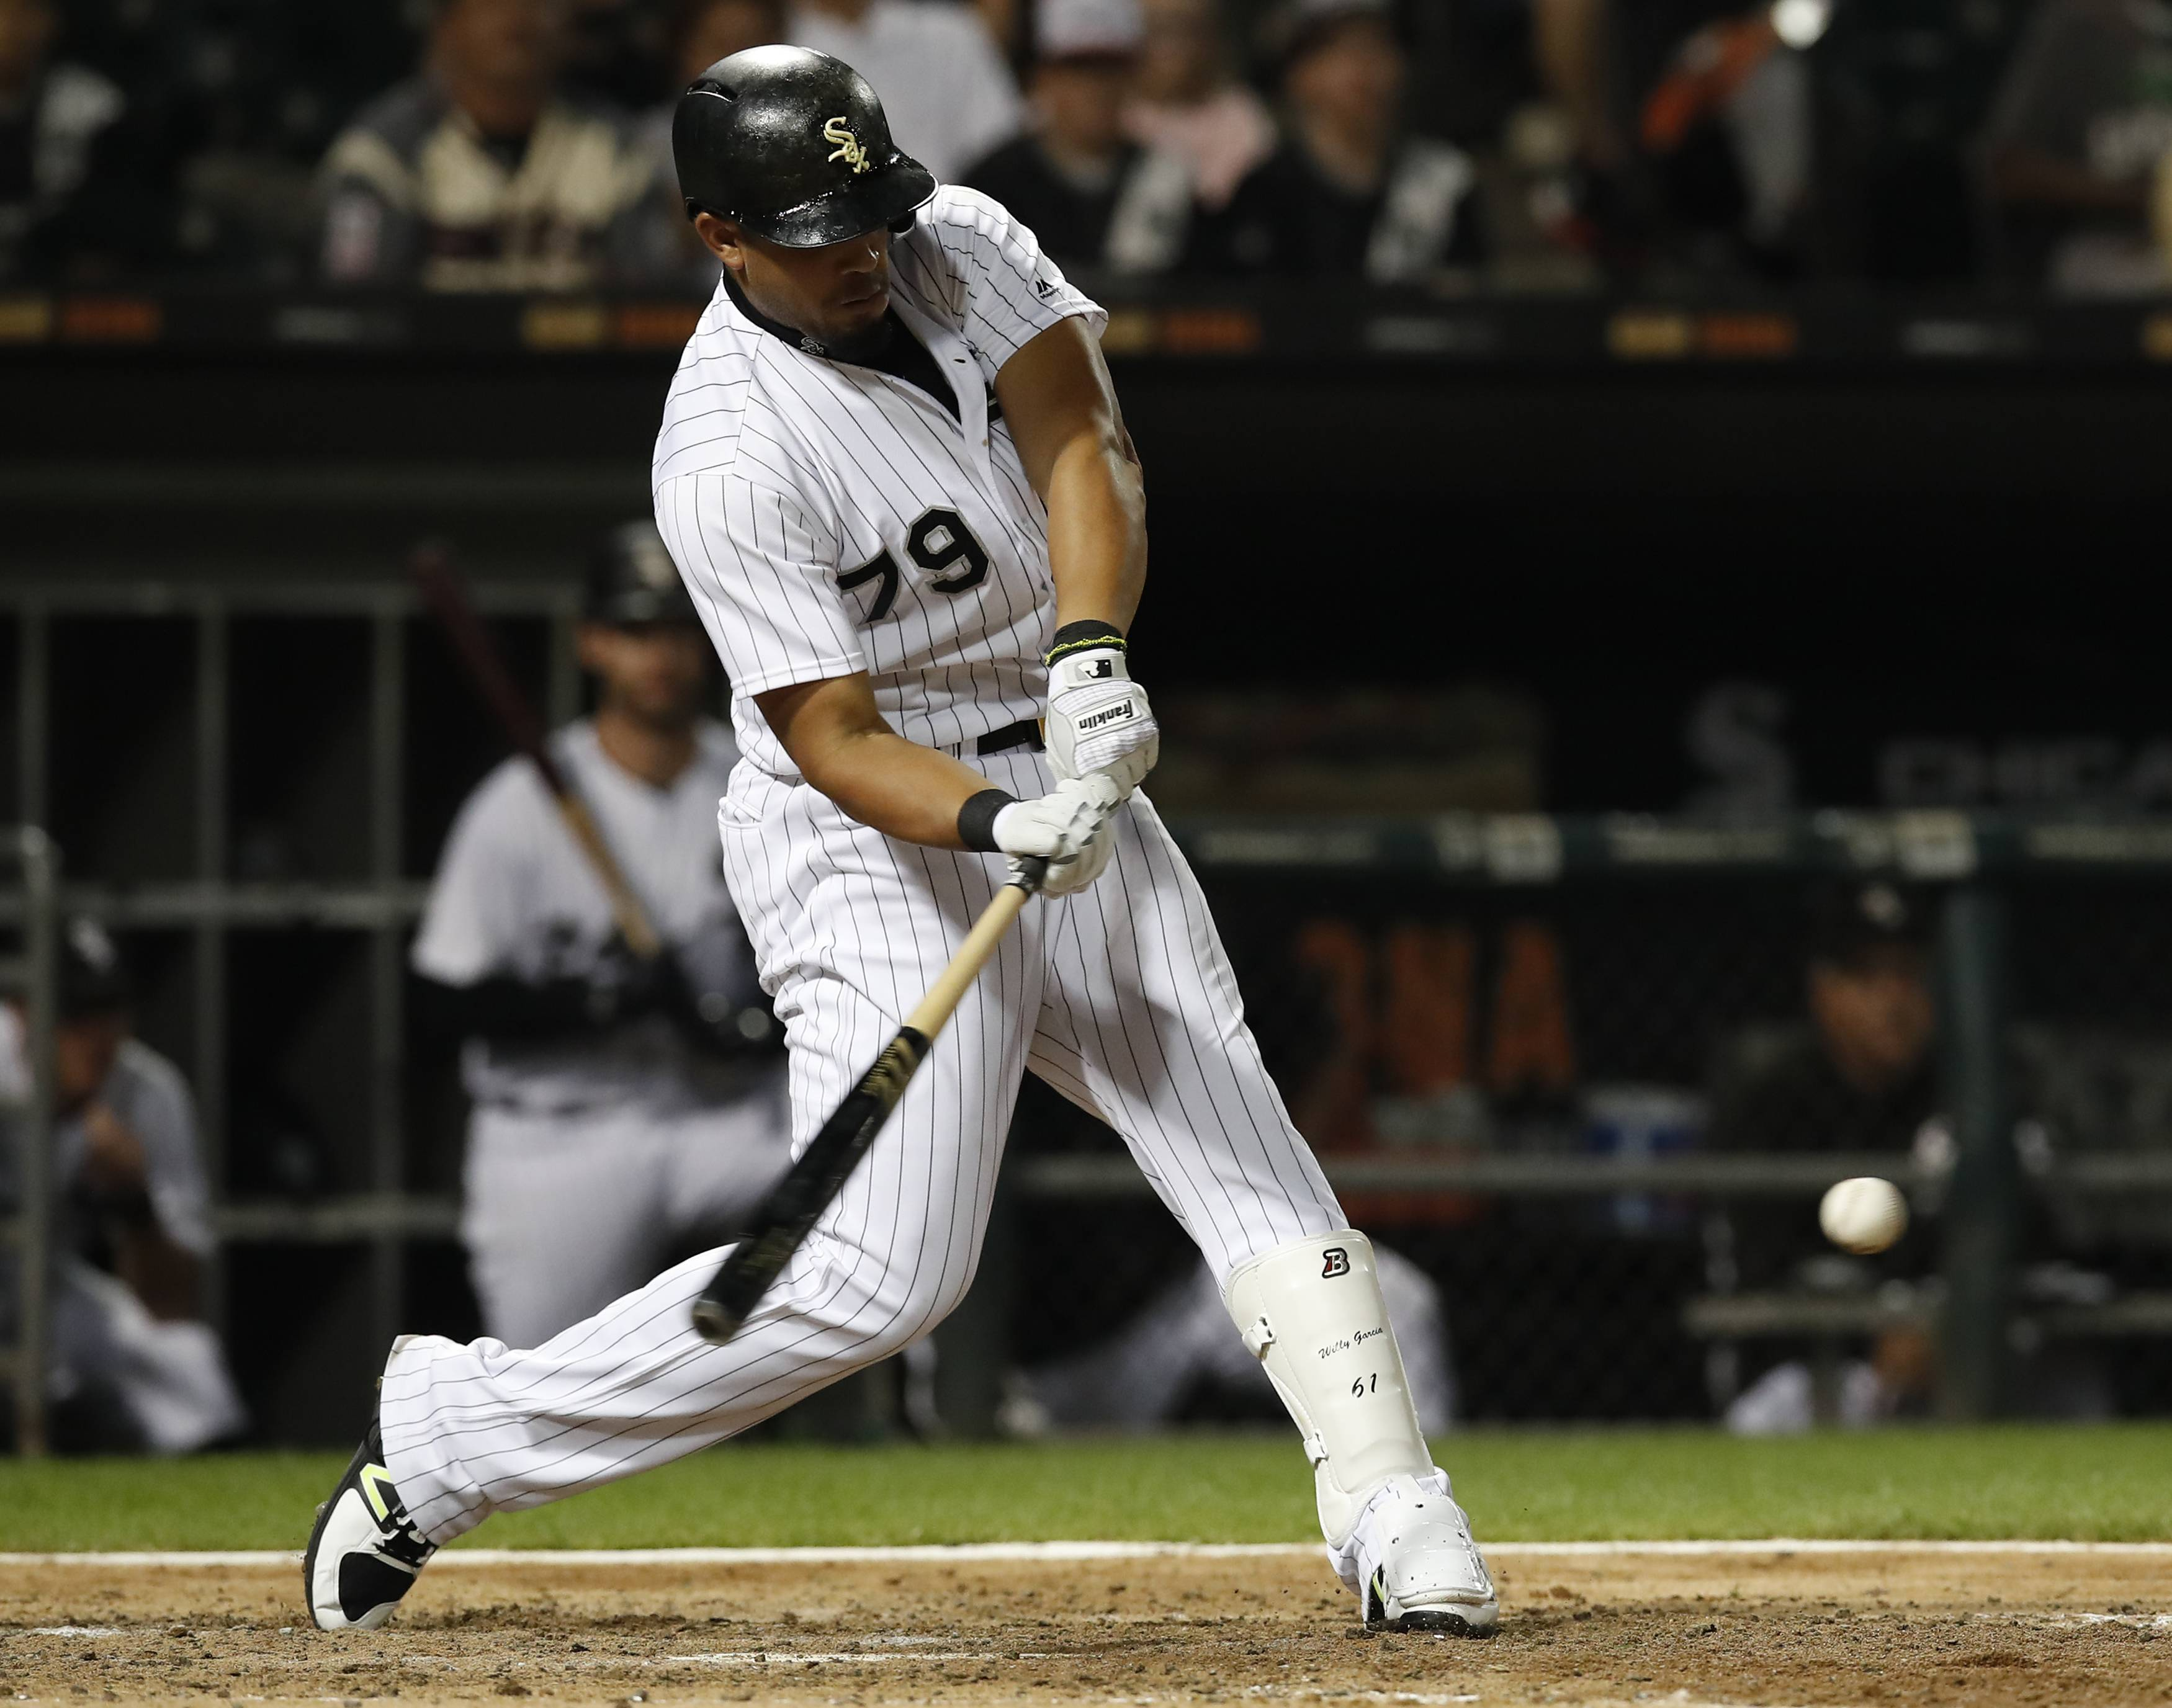 Chicago White Sox's Jose Abreu hits his 100th RBI of the season during the seventh inning of a baseball game against the Kansas City Royals Saturday, Sept. 23, 2017, in Chicago. (AP Photo/Jim Young)